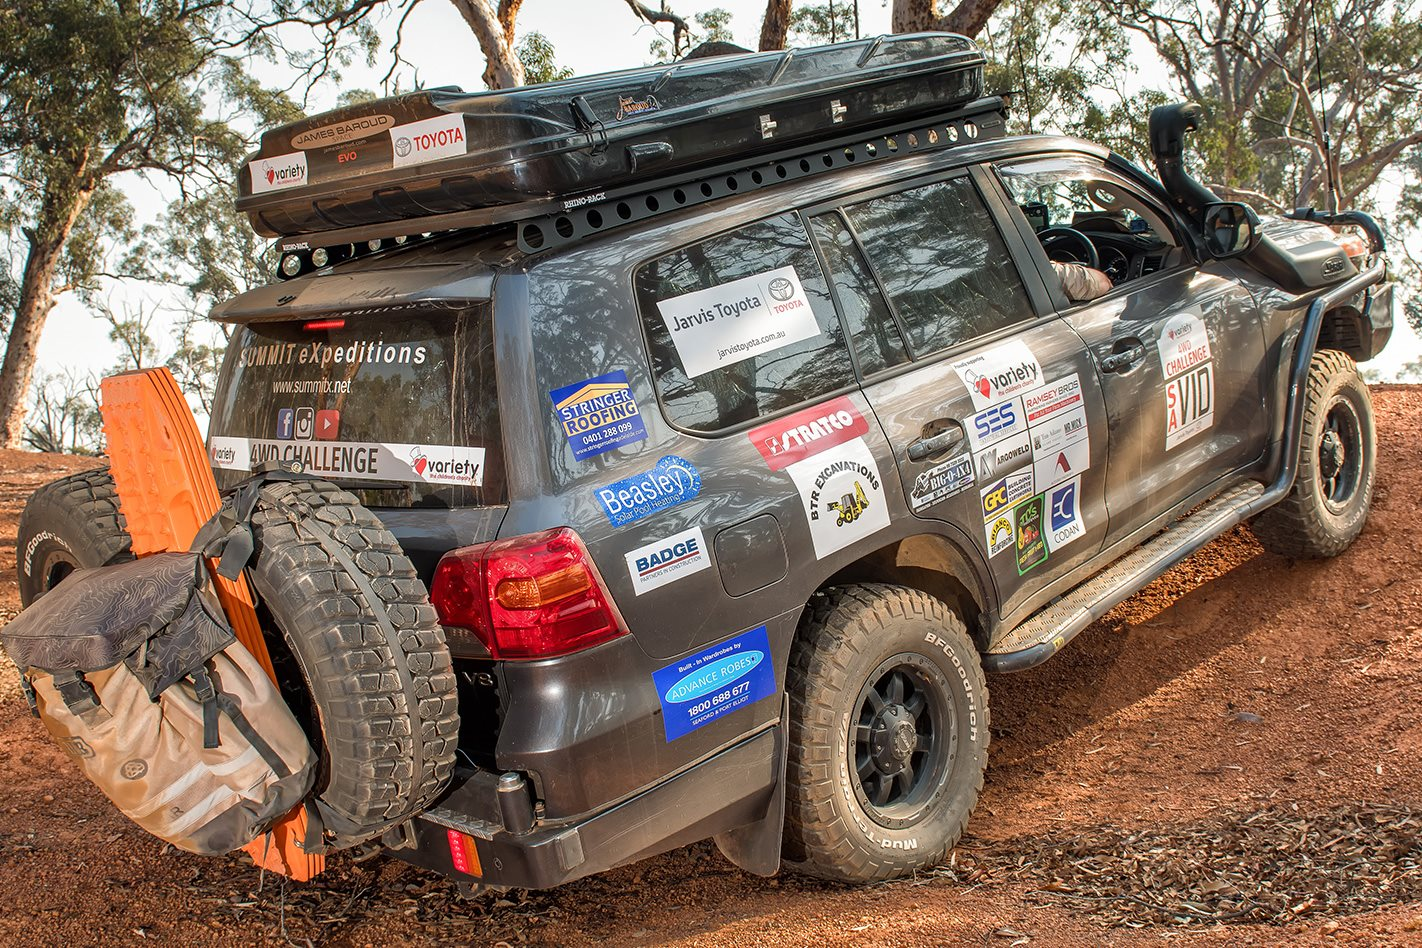 2014 Land Cruiser 200 Series rear